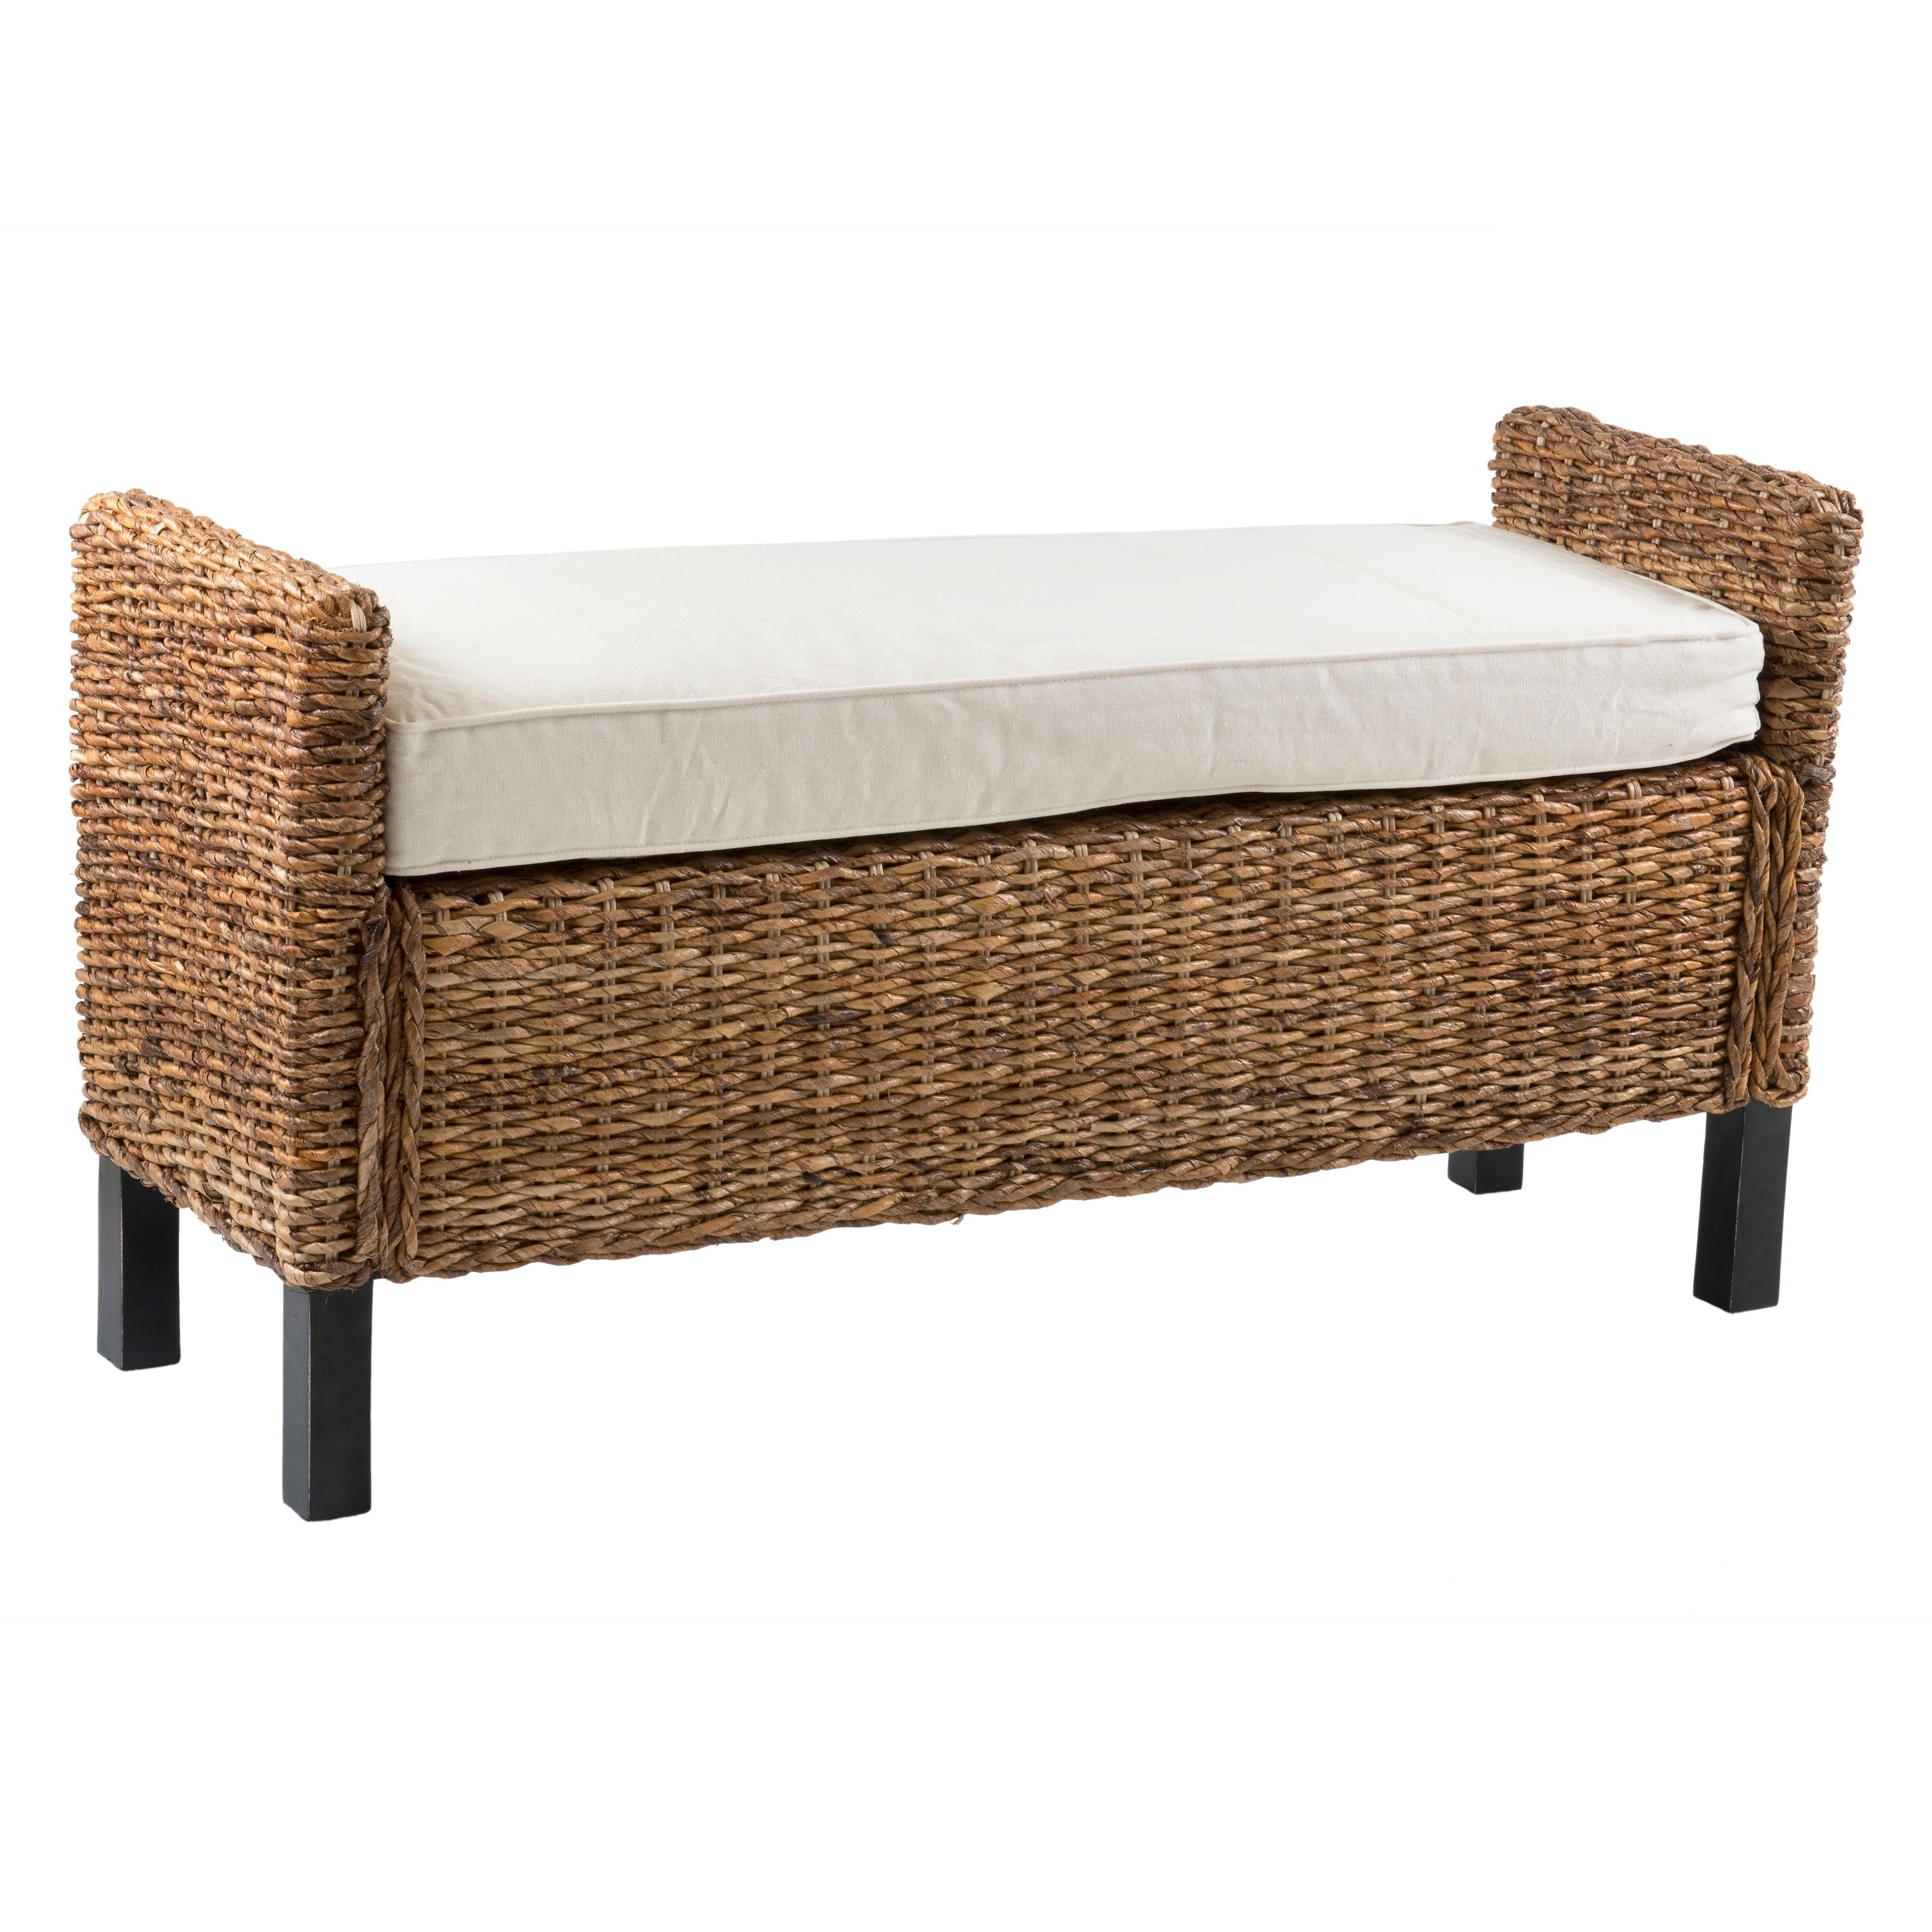 Shop guelph casual tan textured bench free shipping today overstock com 10461744